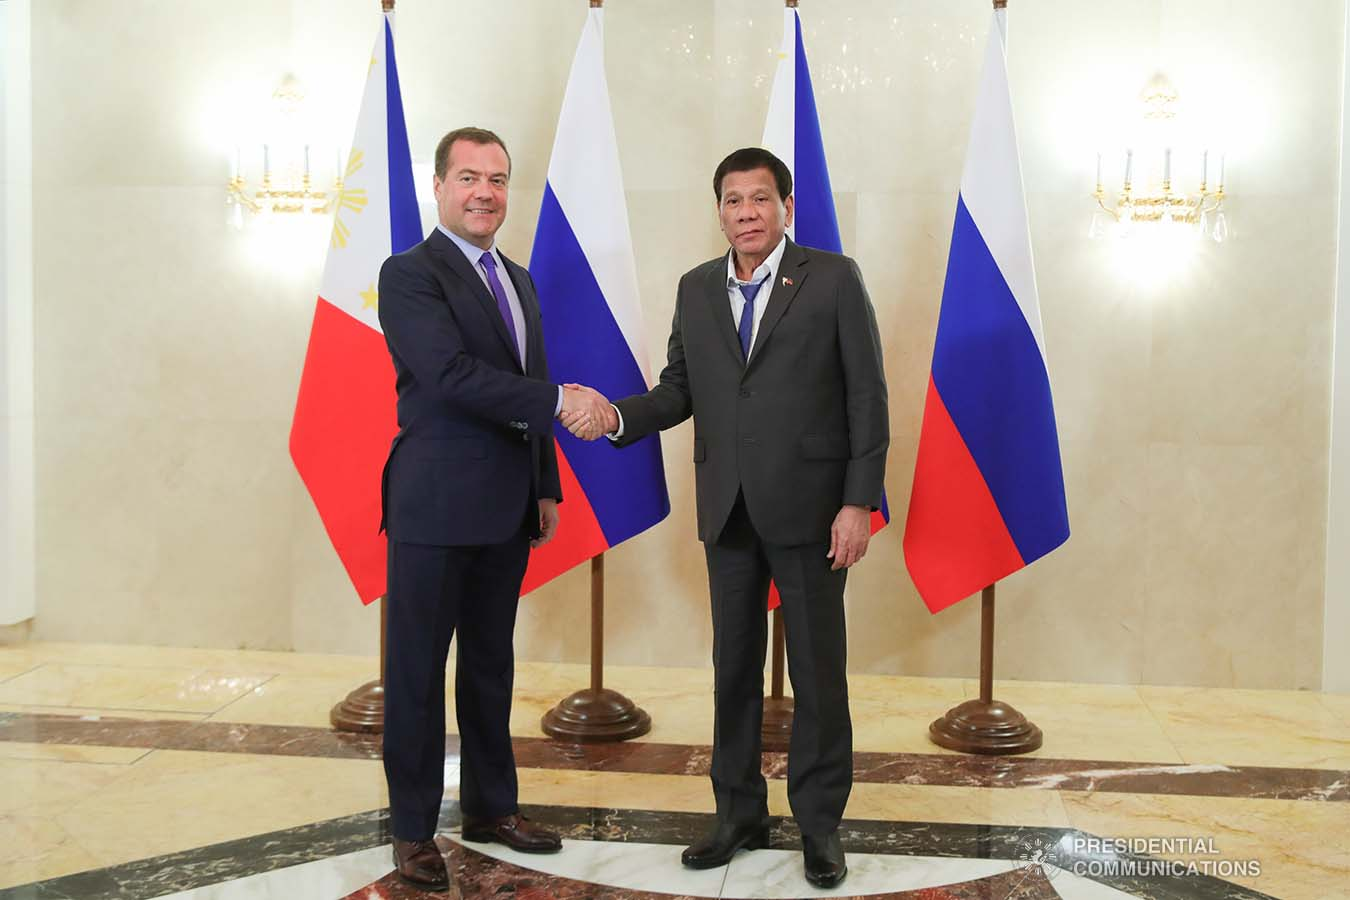 President Rodrigo Roa Duterte and Russian Prime Minister Dmitry Medvedev pose for posterity prior to the start of their bilateral meeting at the Prime Minister's Office in Moscow on October 2, 2019. ROBINSON NIÑAL JR./PRESIDENTIAL PHOTO